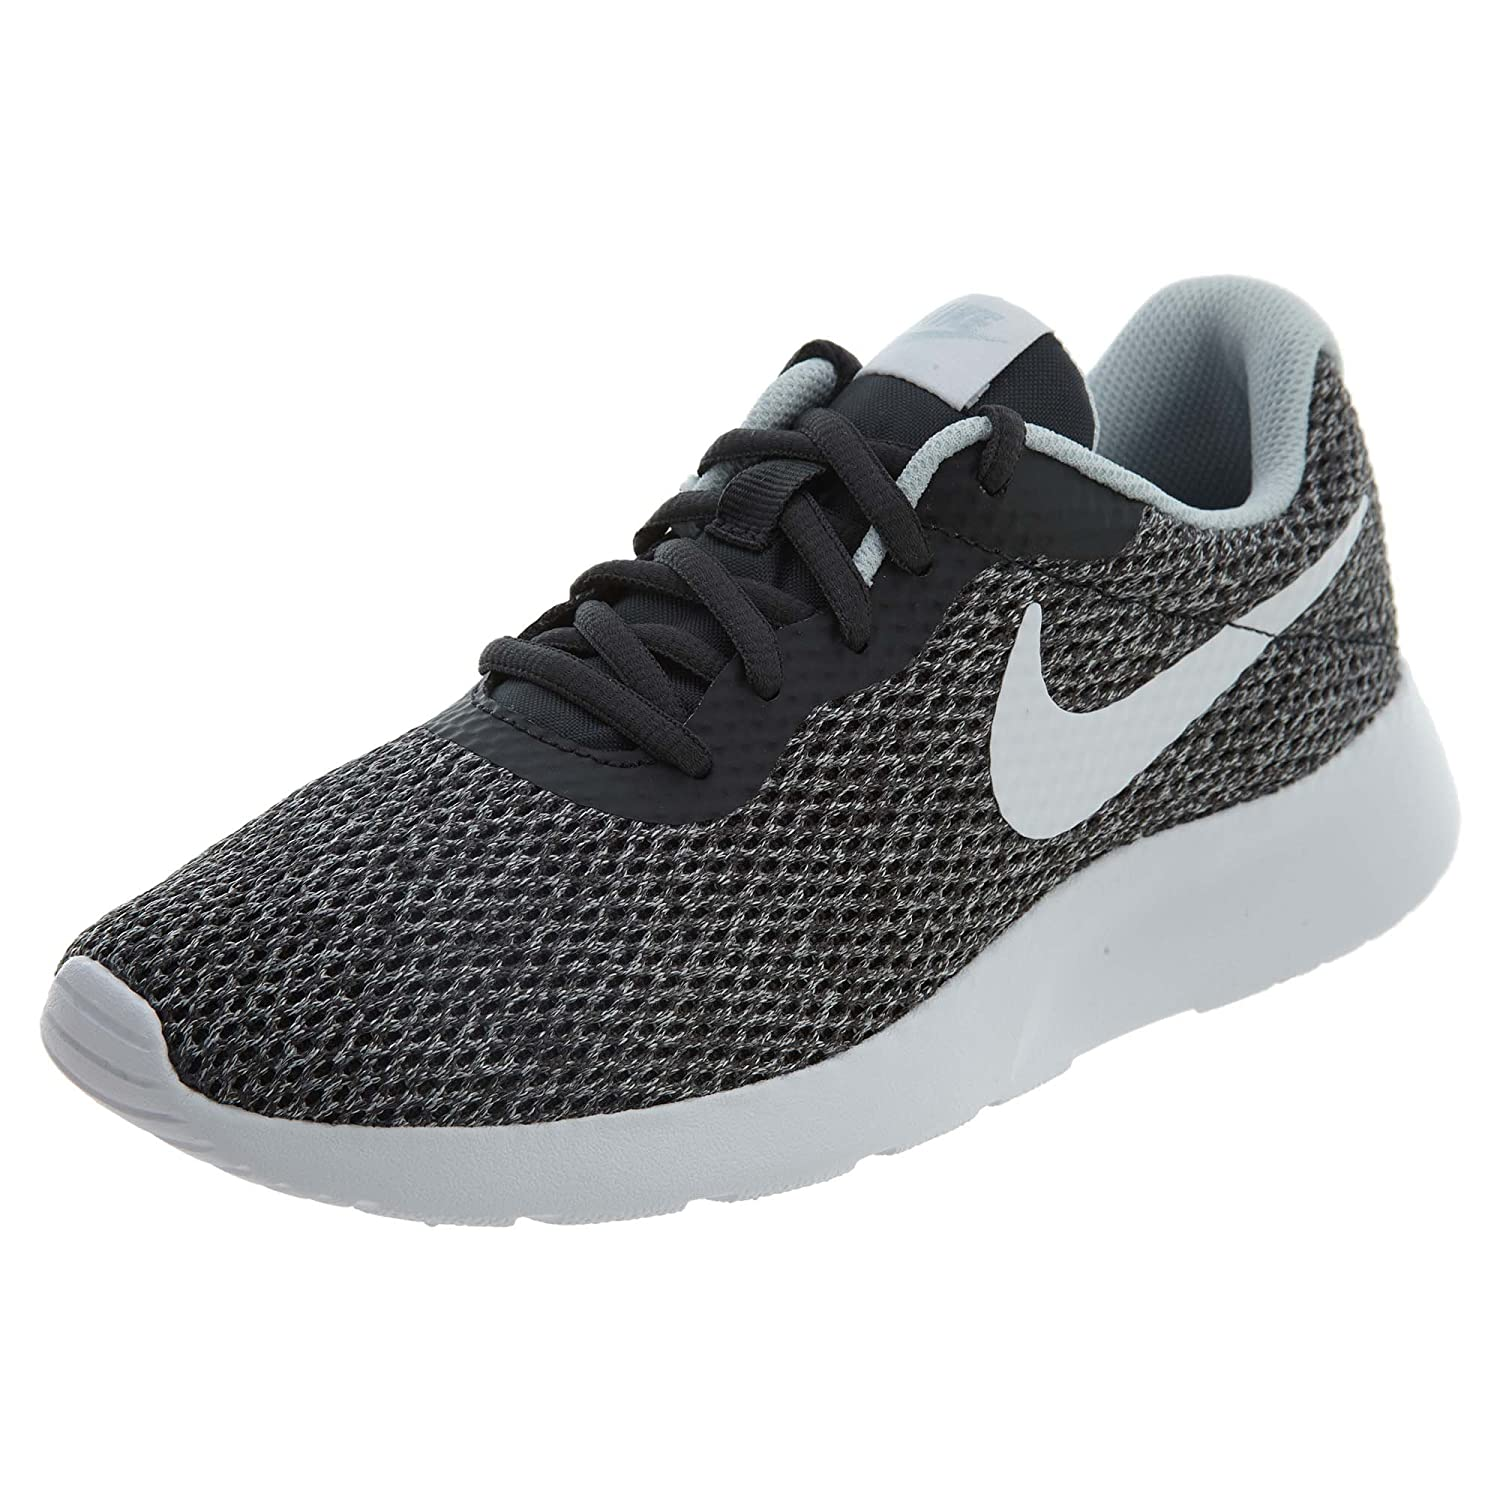 NIKE Women's Tanjun Running Shoes B072F2ZPX2 5.5 B(M) US|Anthracite Wht Black Platinum